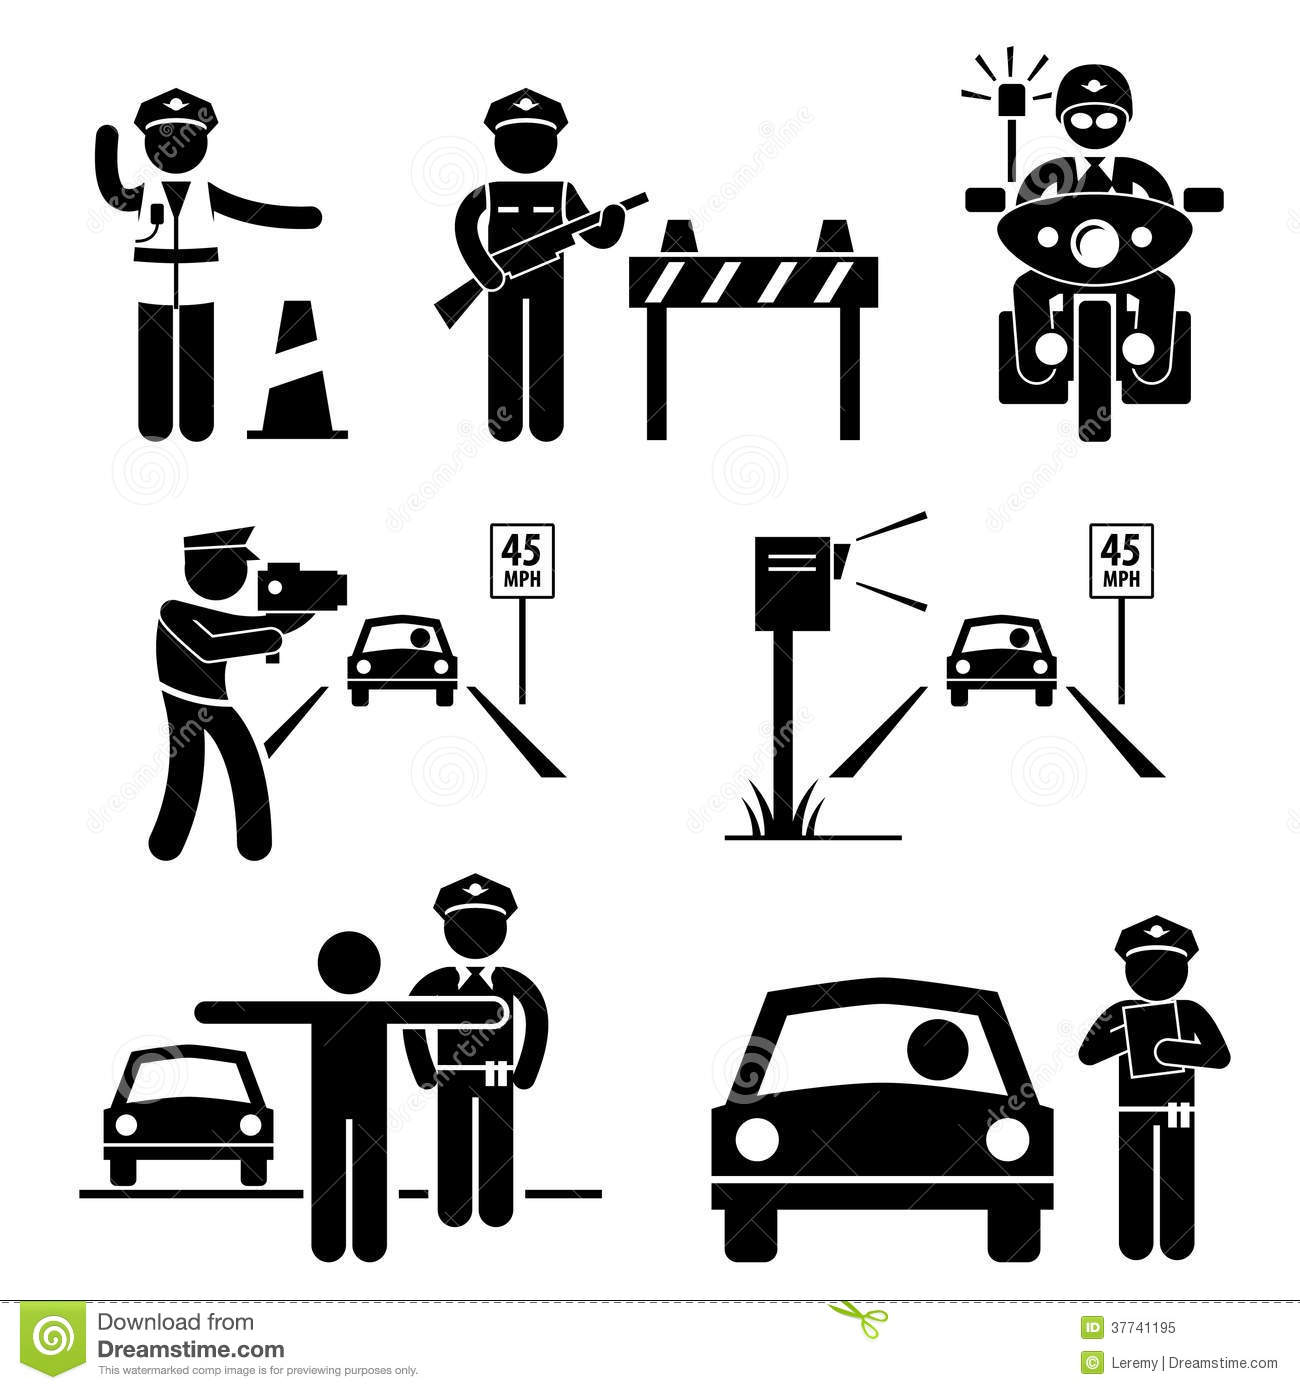 Police Officer Traffic On Duty Pictogram Icon Royalty Free